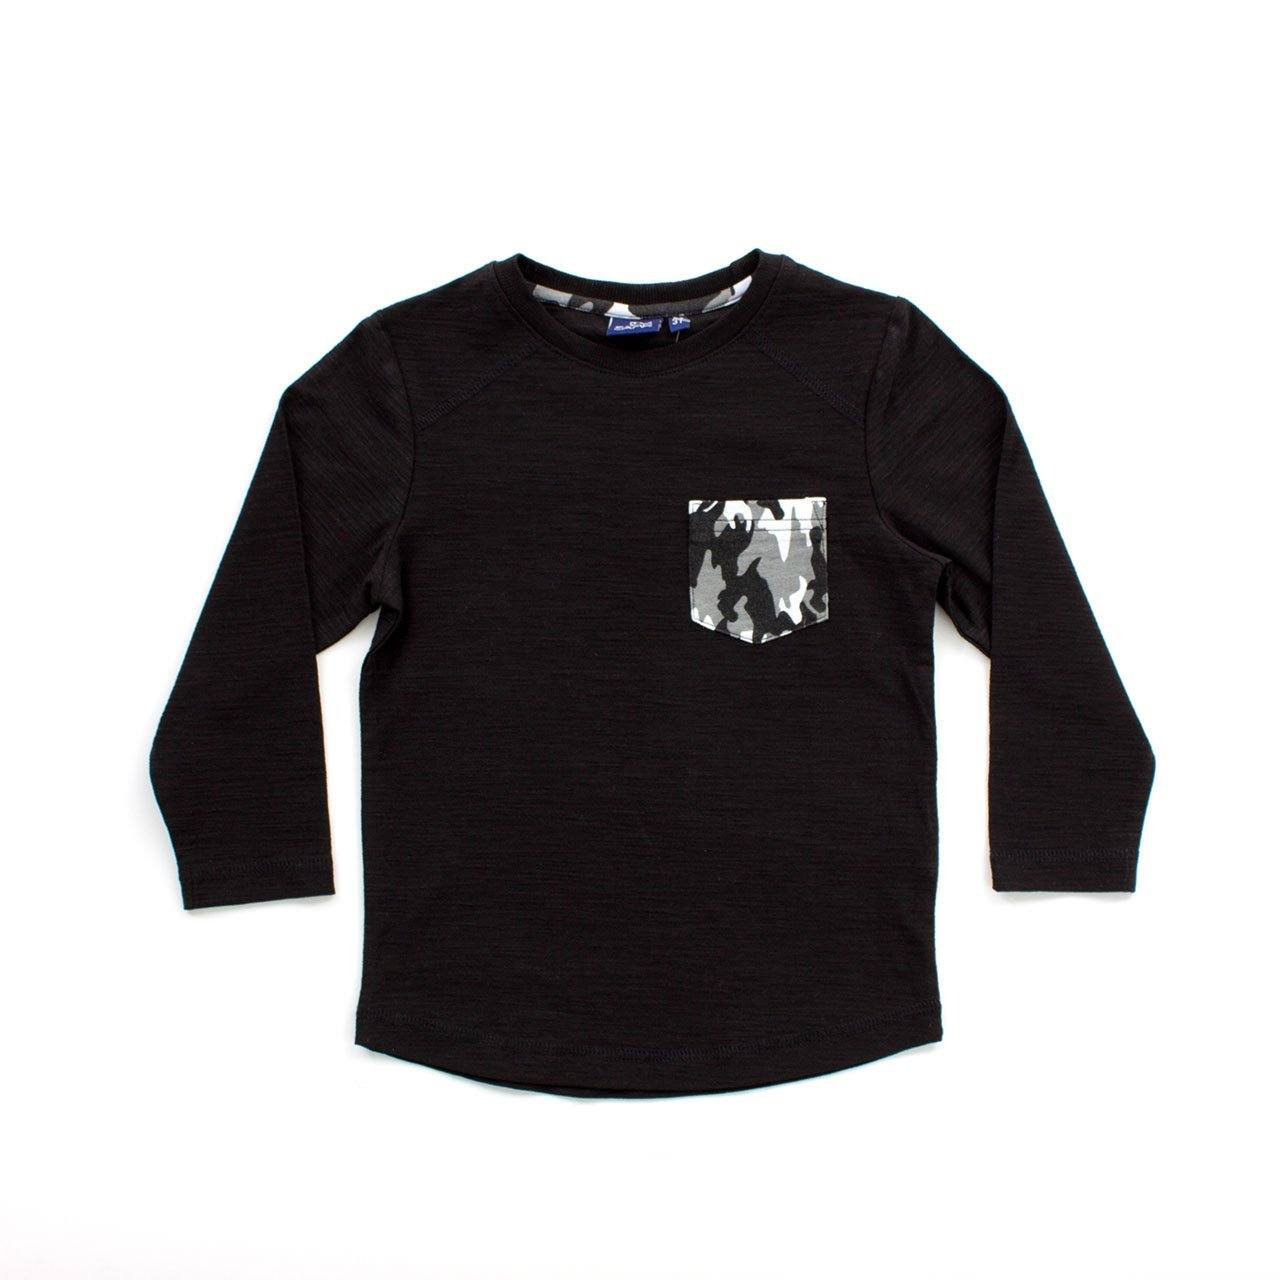 Baby, Long Sleeve Tee - Kendrick Long Sleeve Tee Baby